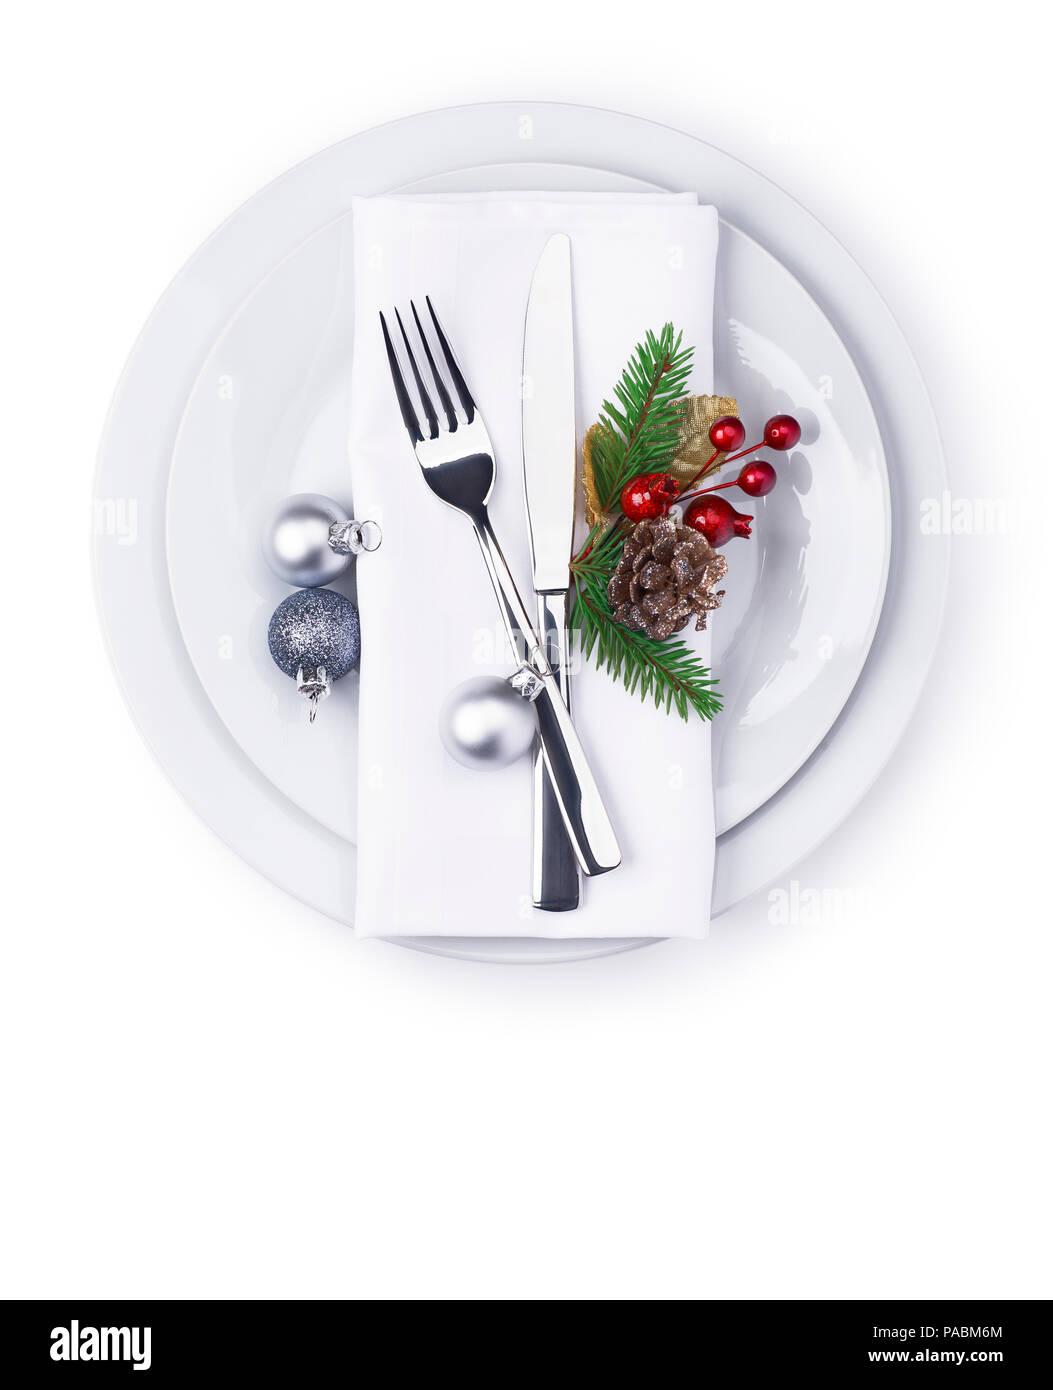 new year and christmas celebration plate as background for menu and invitation